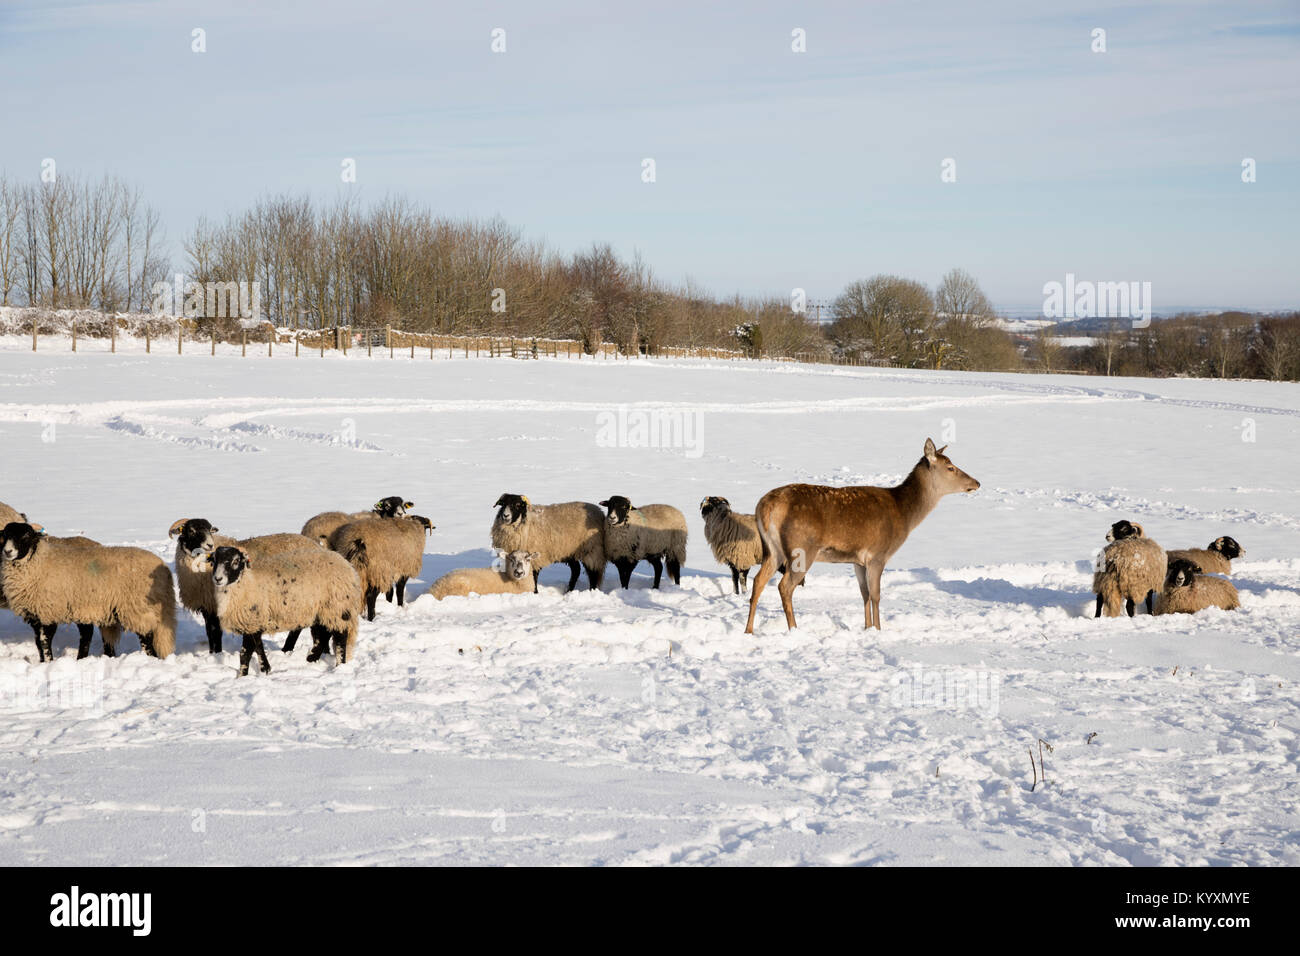 White sheep and deer in snow covered field, Broadway, The Cotswolds, Worcestershire, England, United Kingdom, Europe - Stock Image